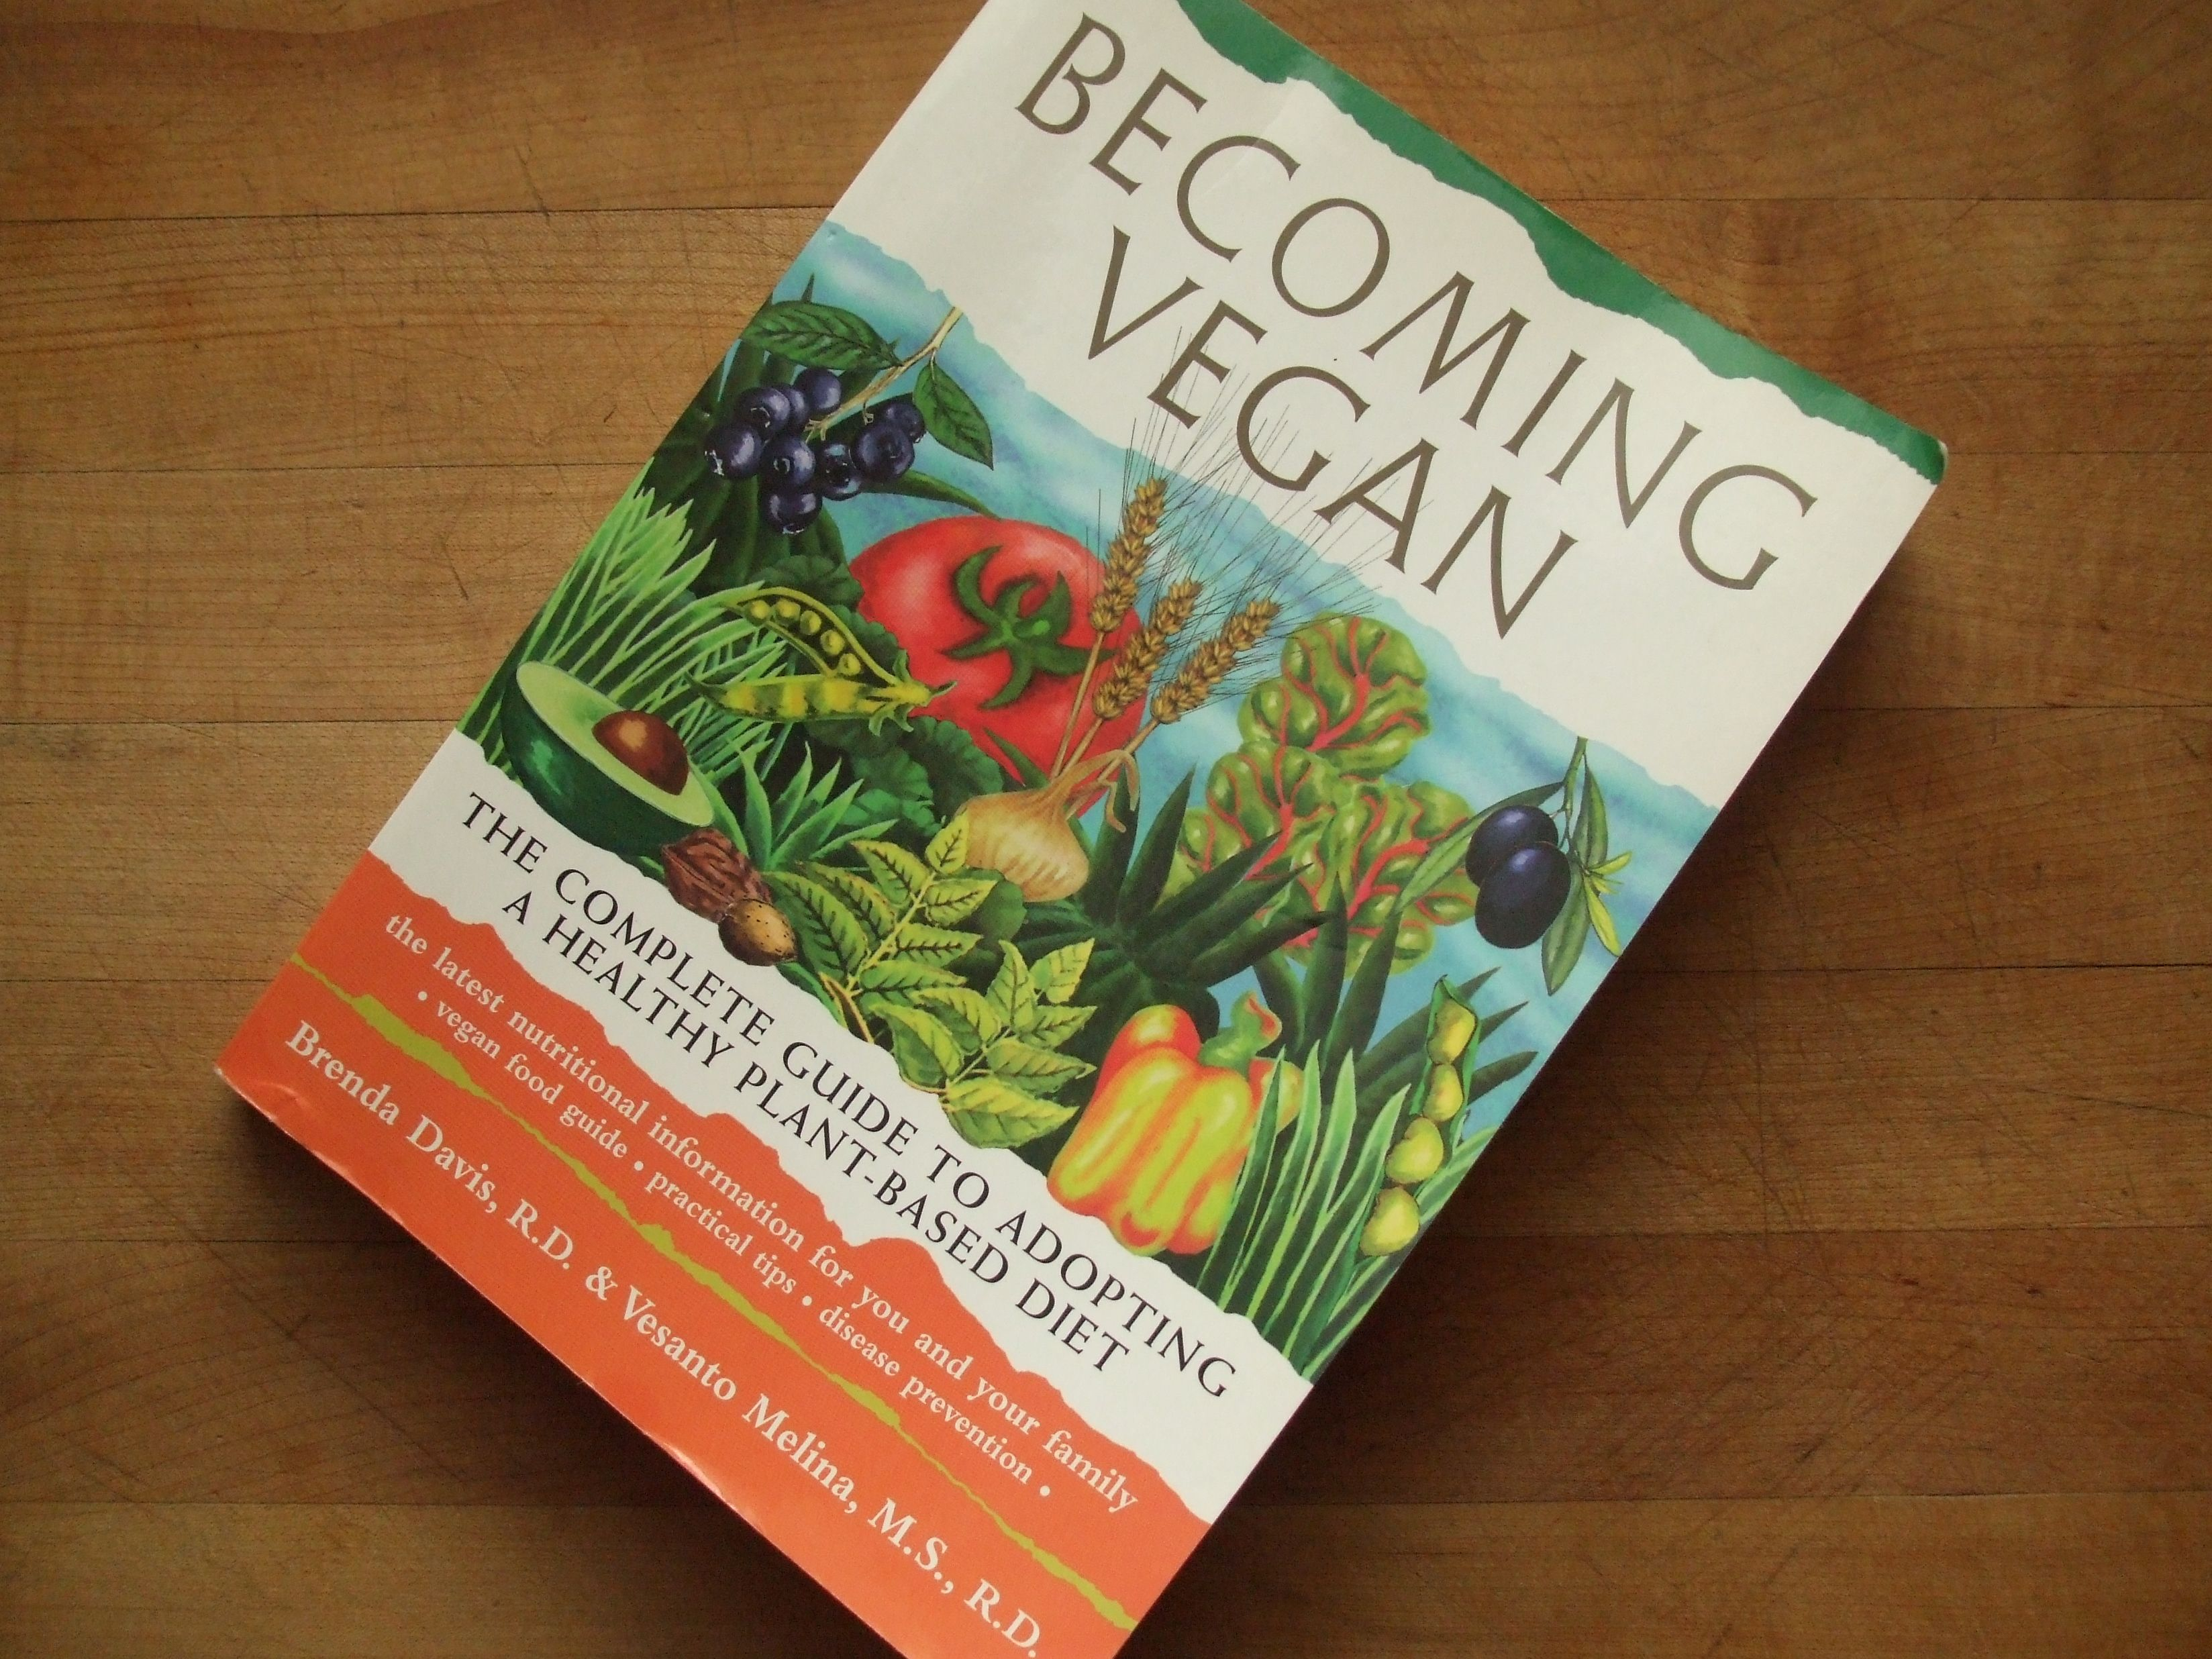 Becoming Vegan by Davis